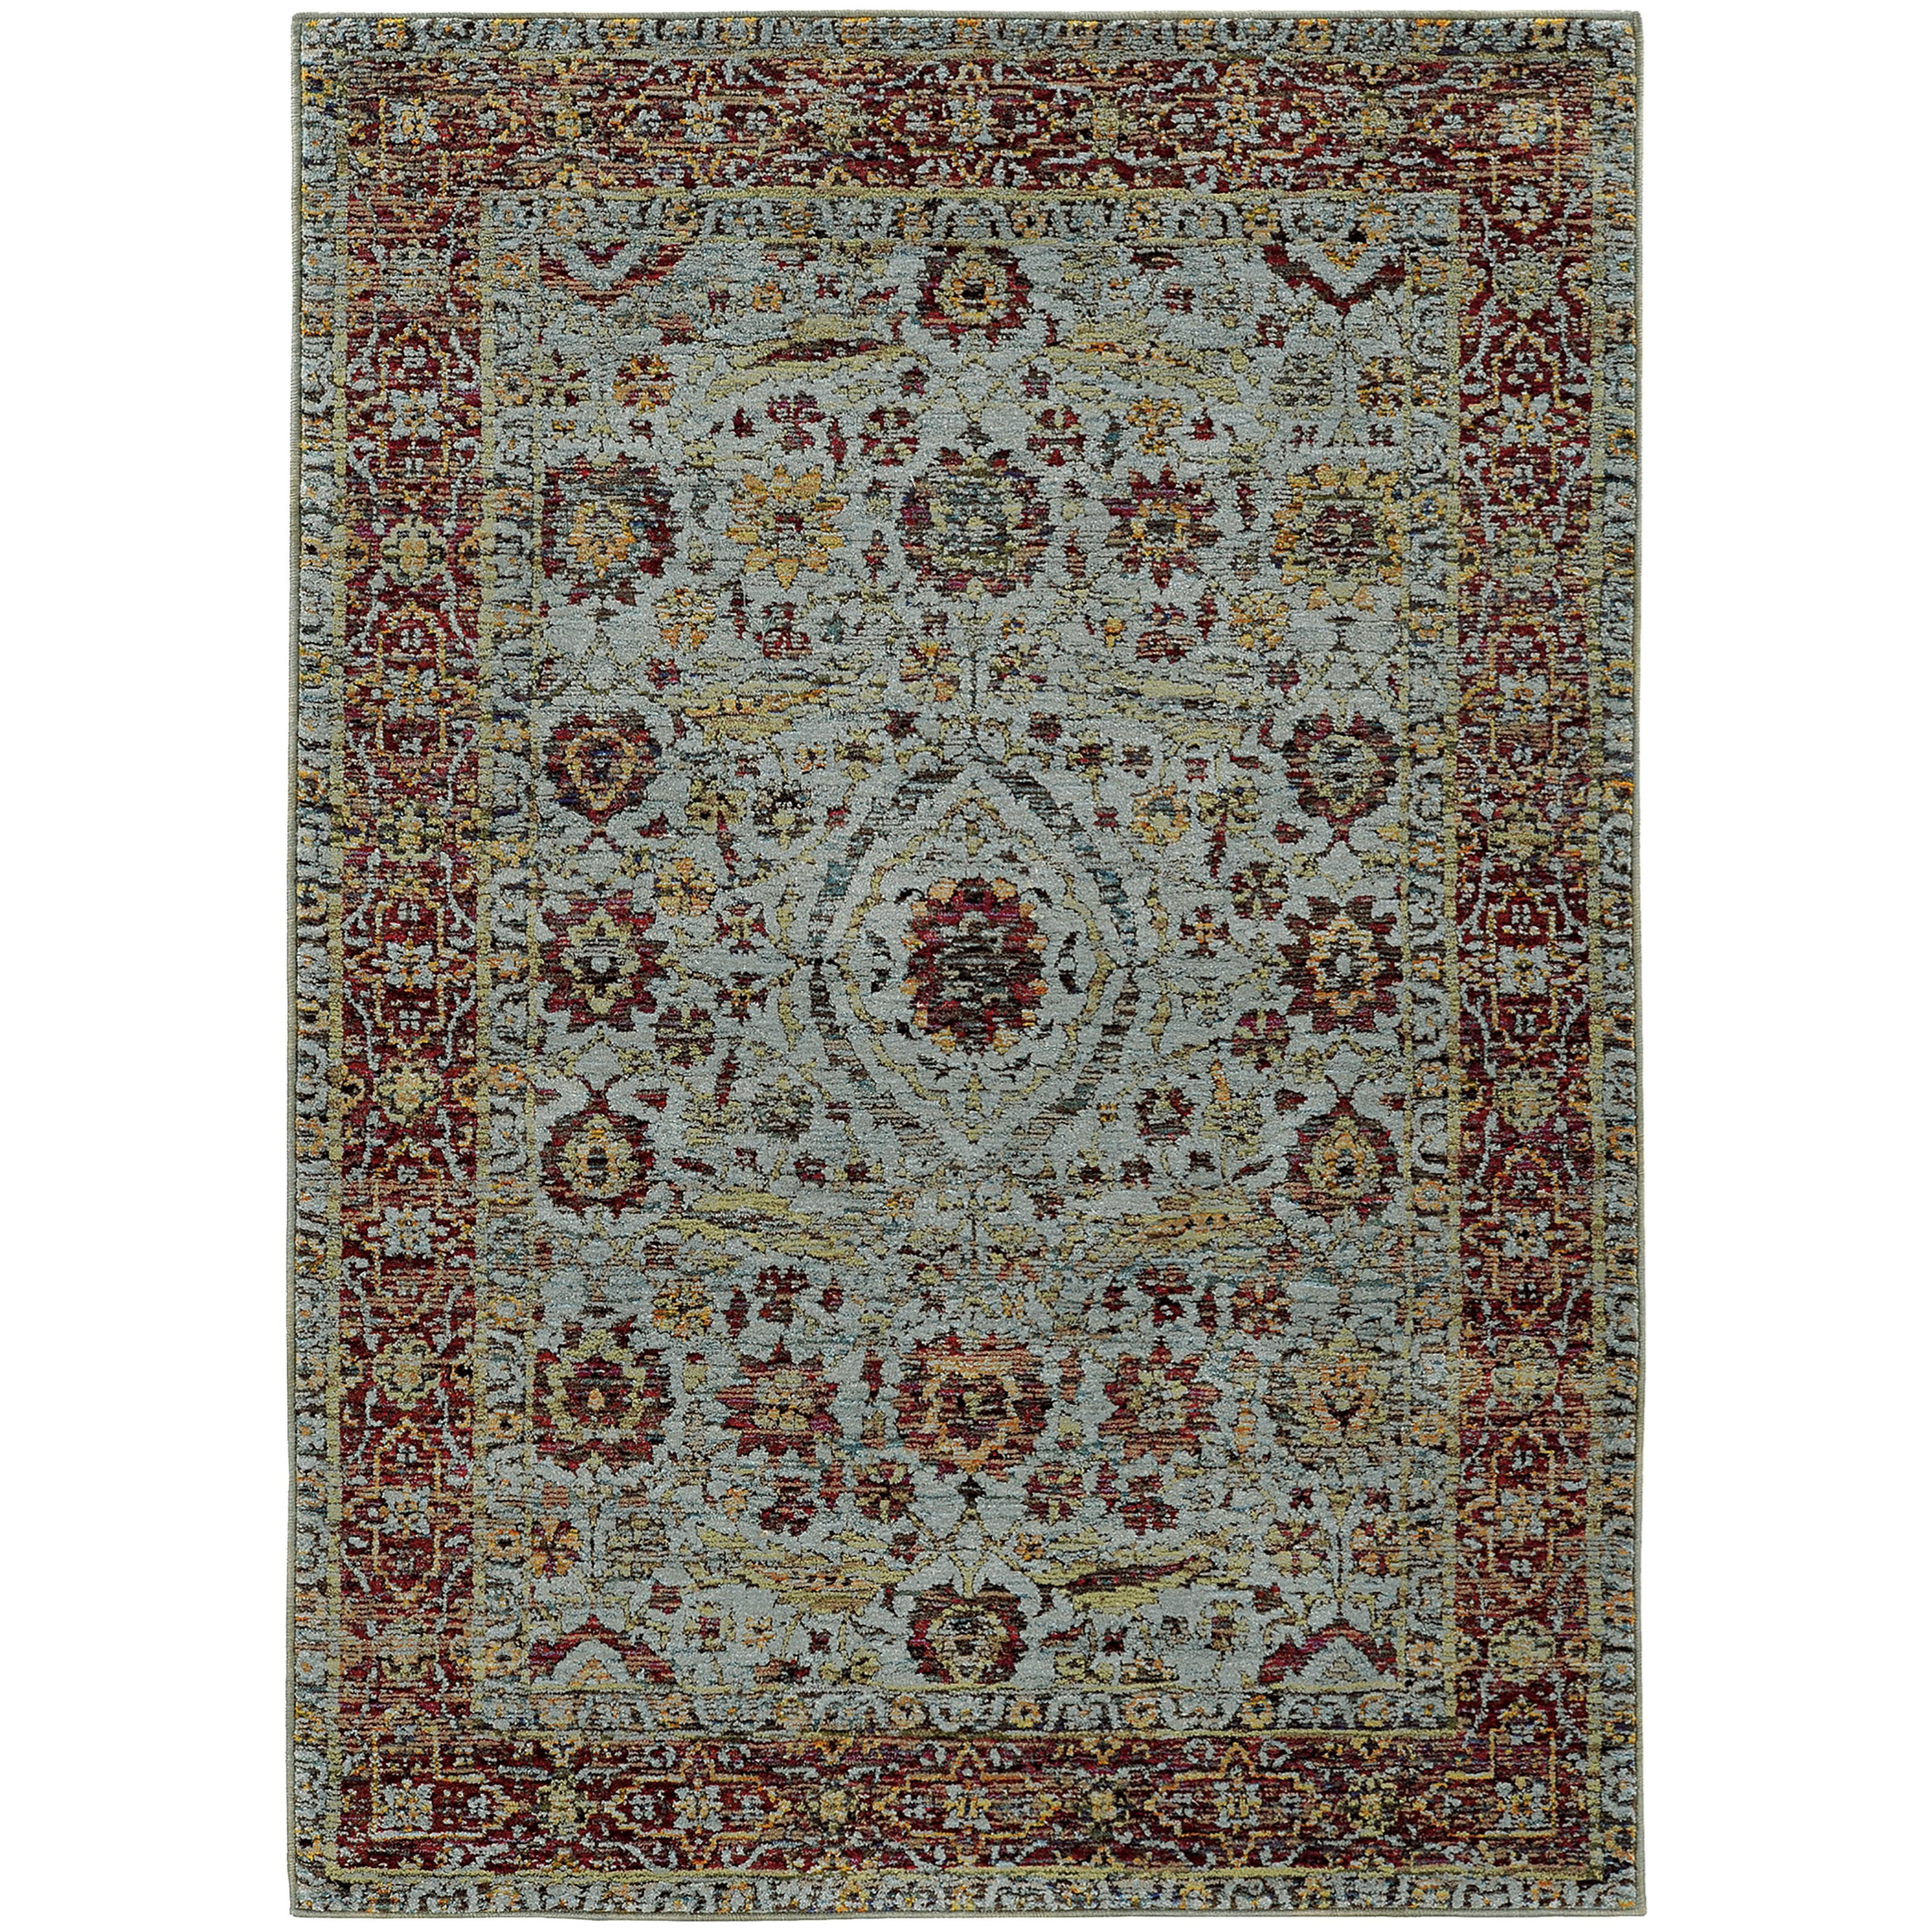 """Andorra 7'10"""" X 10'10"""" Casual Blue/ Red Rectangle Ru by Oriental Weavers at Steger's Furniture"""